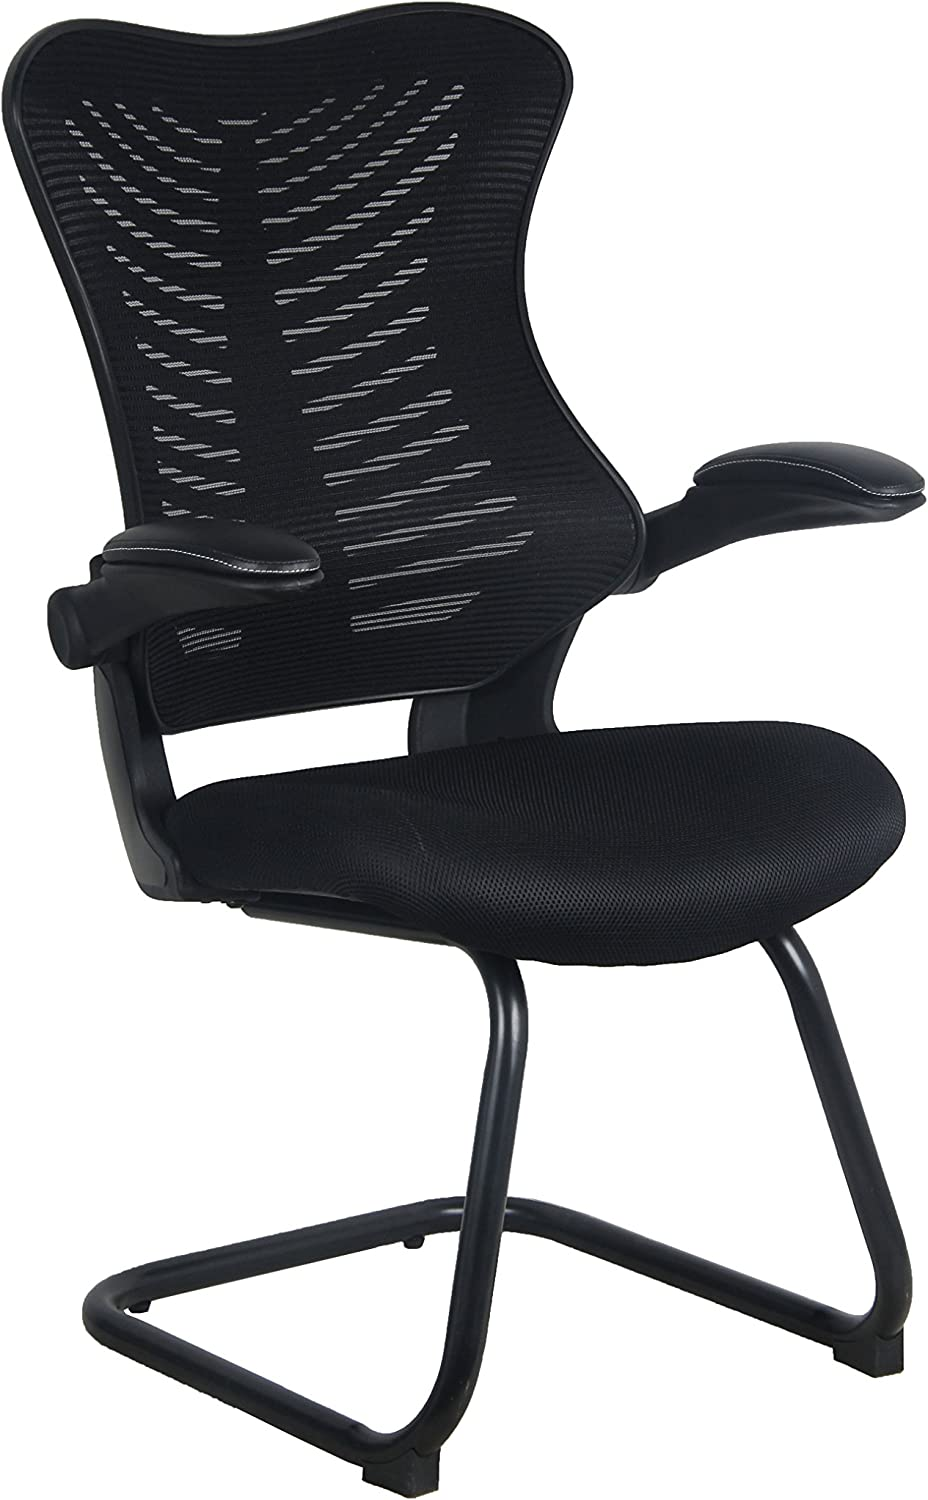 Office Factor Reception Guest Chairs with Flip Up Arms – Comfortable Mesh, Ergonomic Contour, Flippable Armrests – Modern Convertible Furniture for Visitors, Meeting Groups (Black)